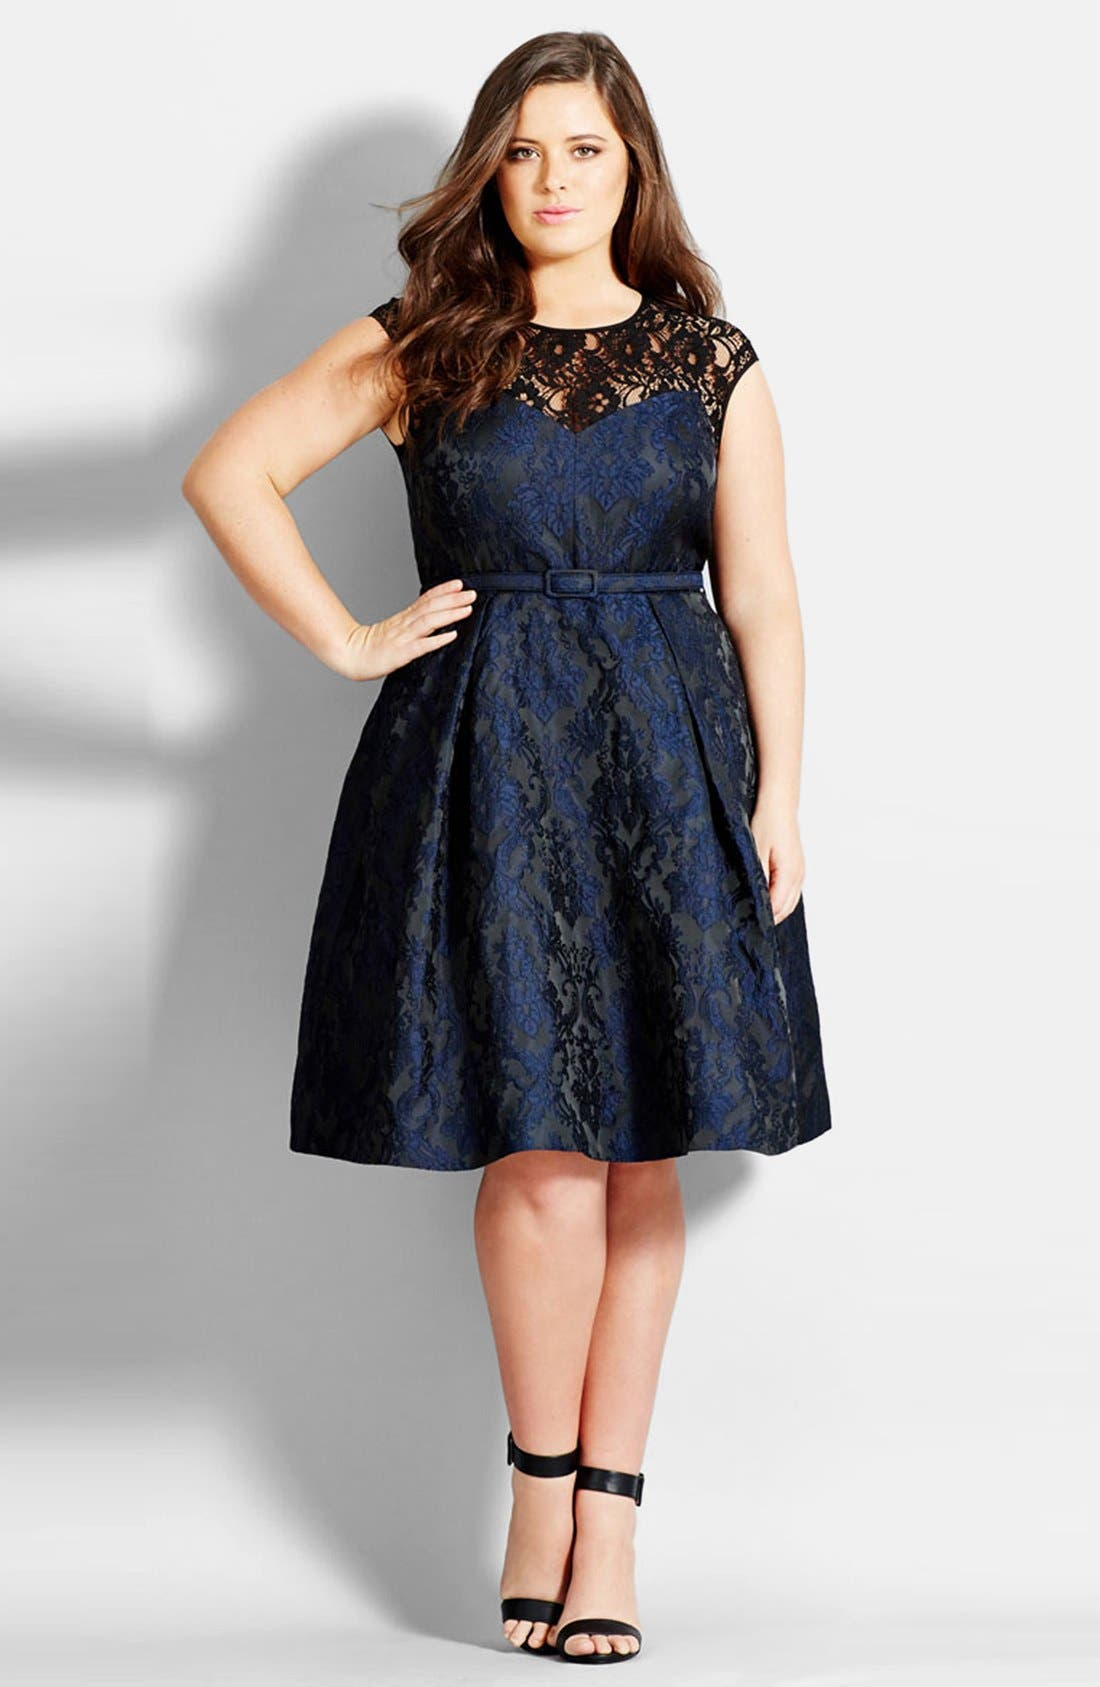 Pictures of plus size models in dresses